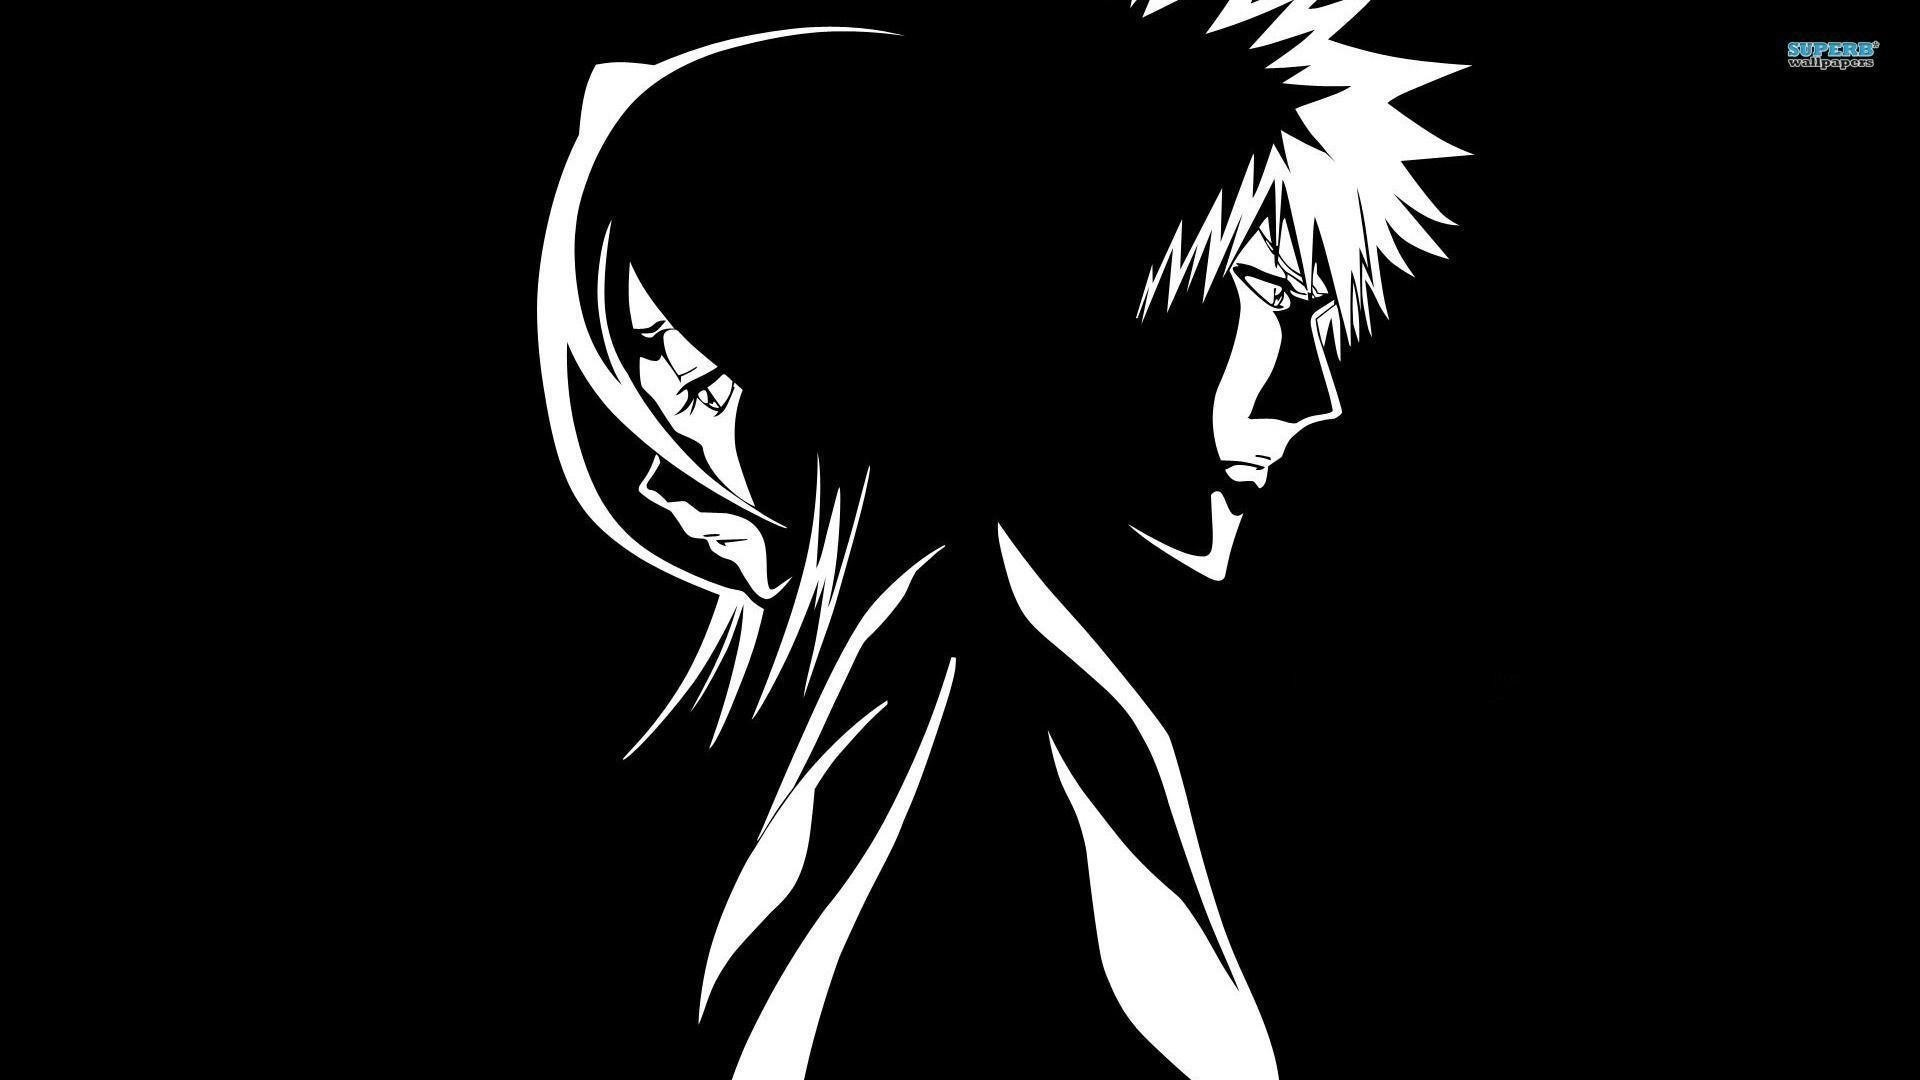 Anime Black And White Wallpaper theme